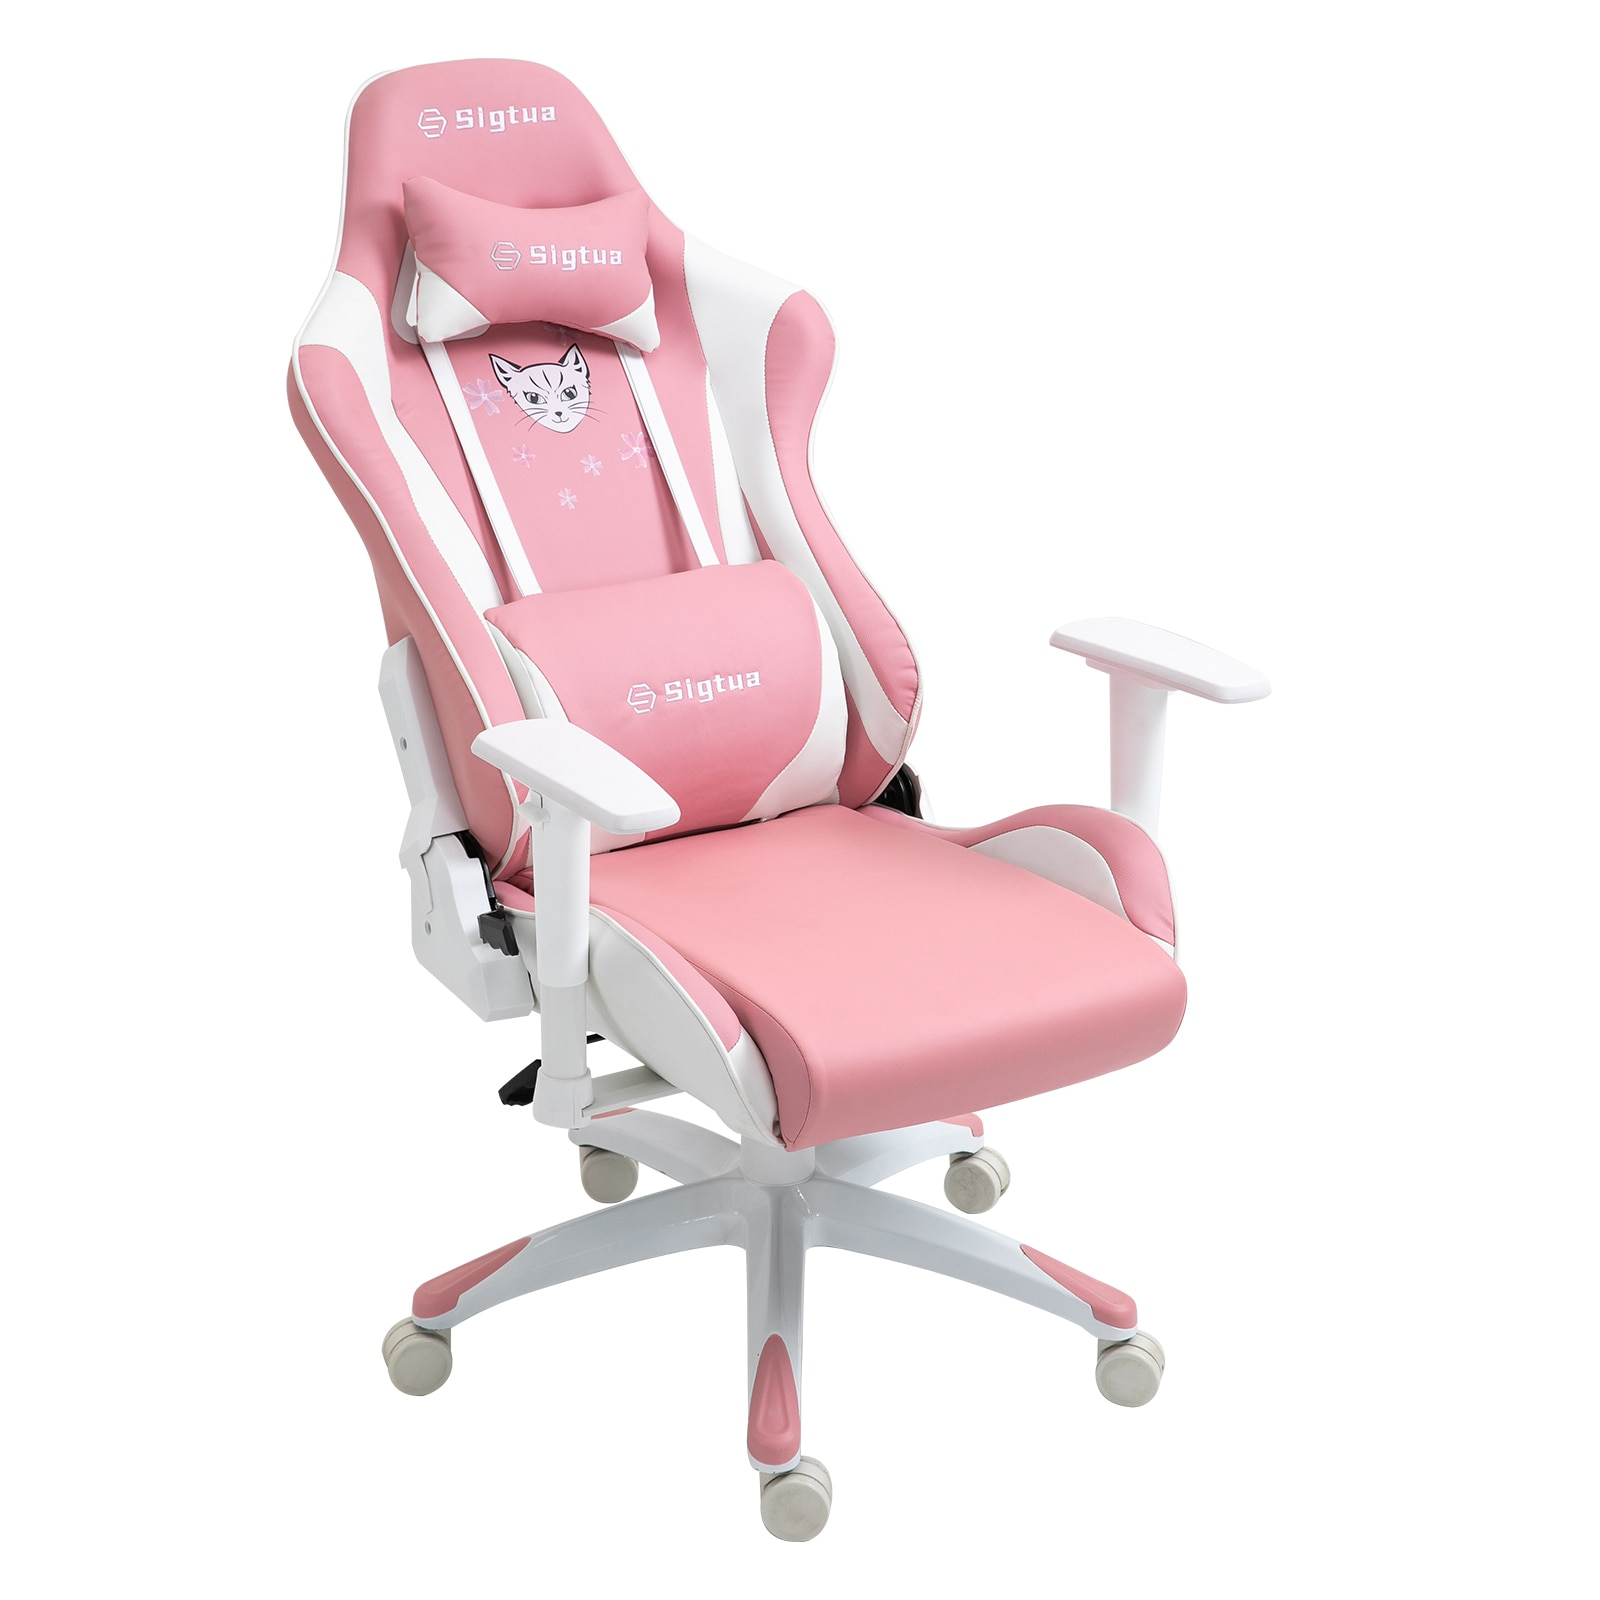 H224fb08b8fa844ecb81fd864e8915de7H - Sigtua Pink Gaming Office Chair Height-adjustable Armrests Computer Chair Ergonomic Swivel Executive Chair with High Backrest